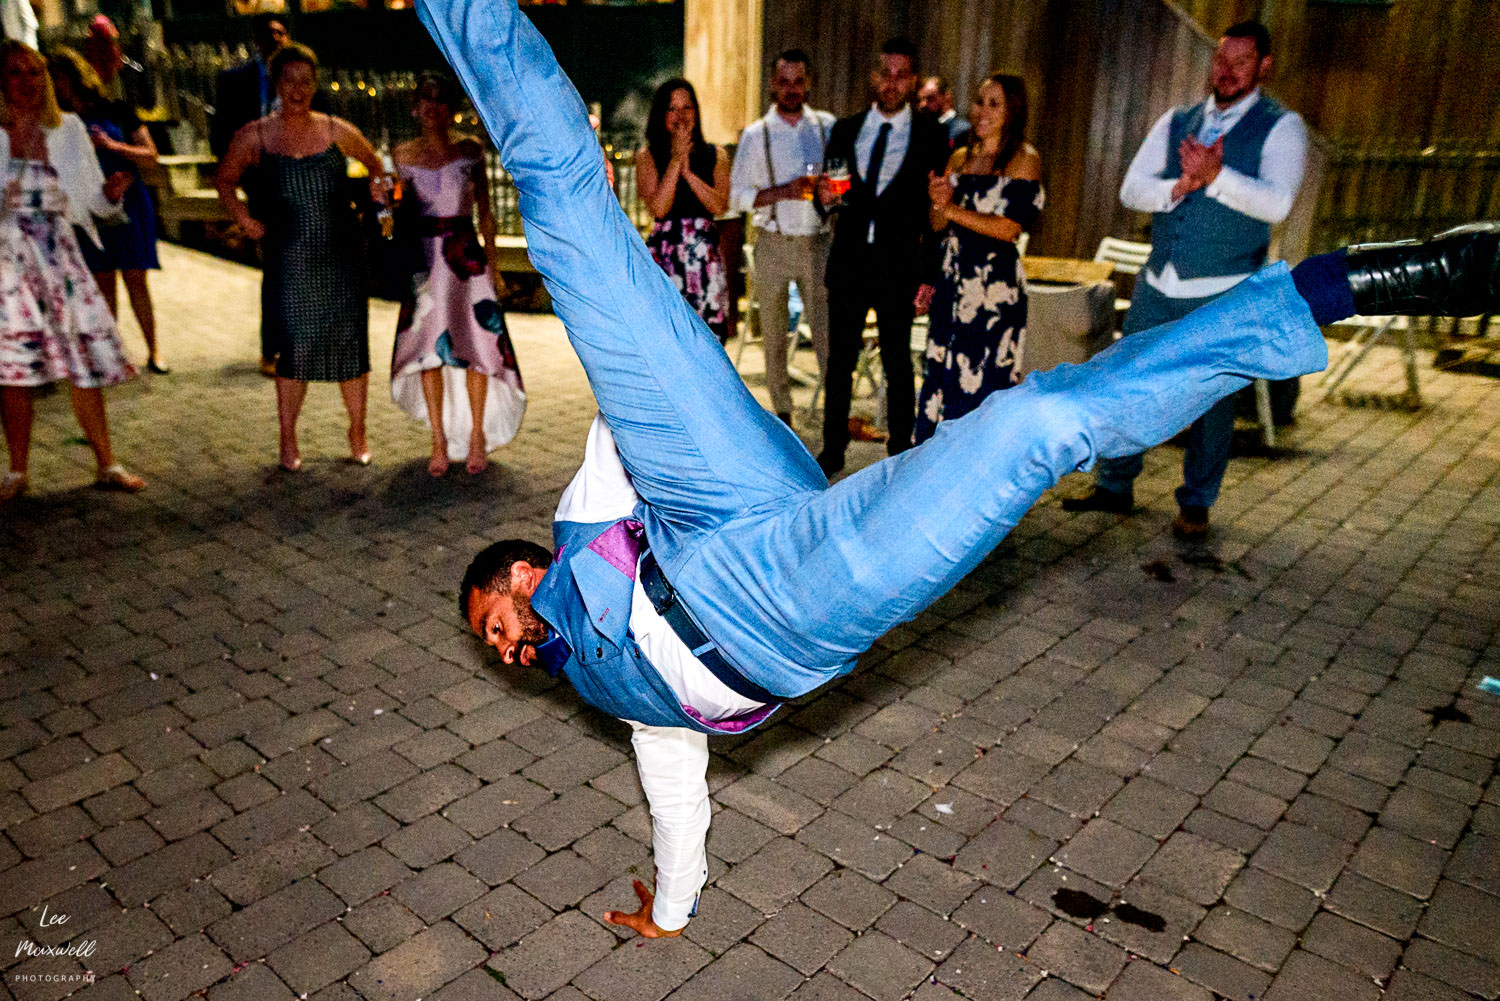 Break dance battle at wedding